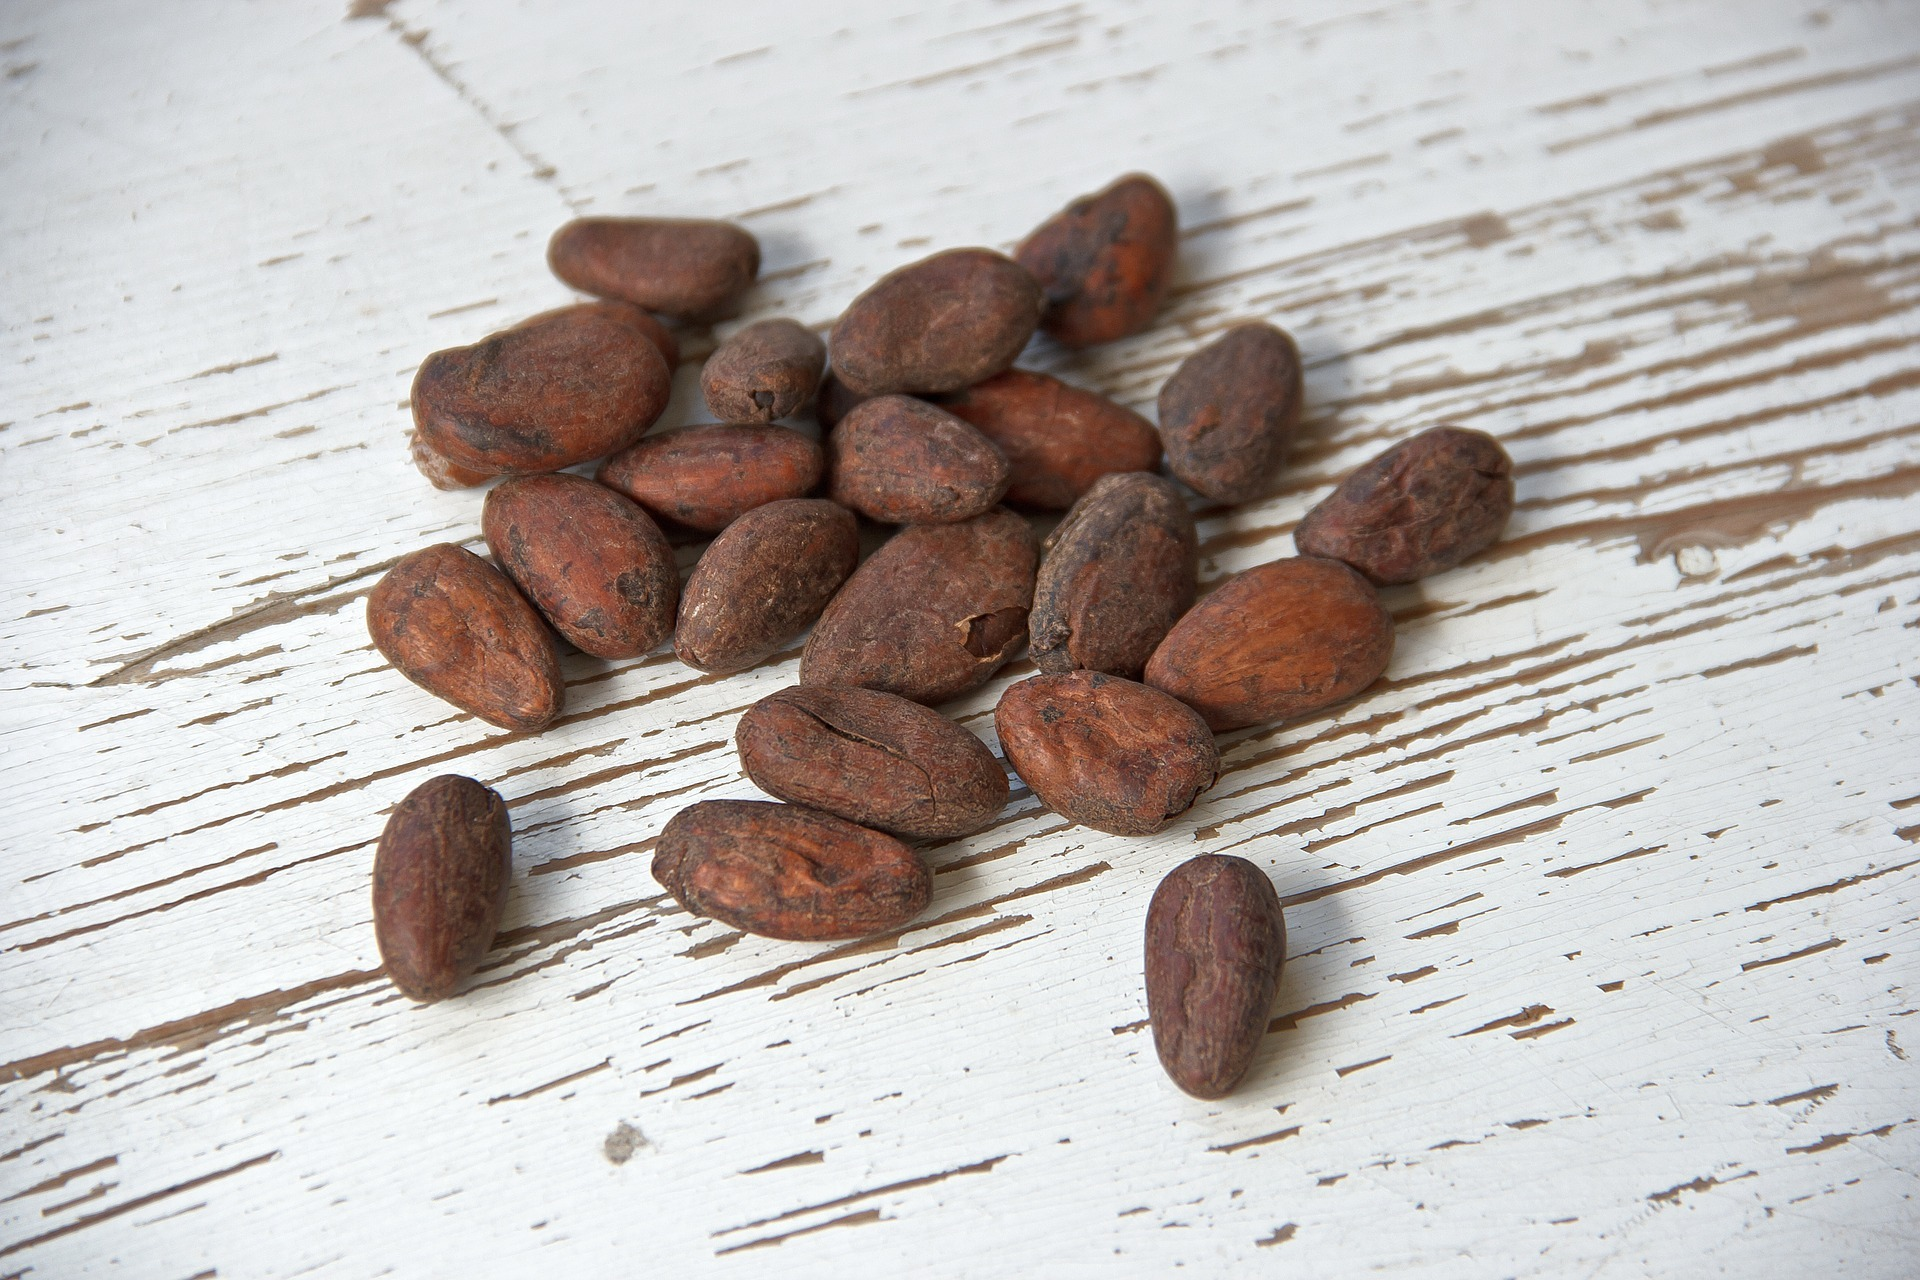 beauty uses of cocoa bean - By Megan Kelly